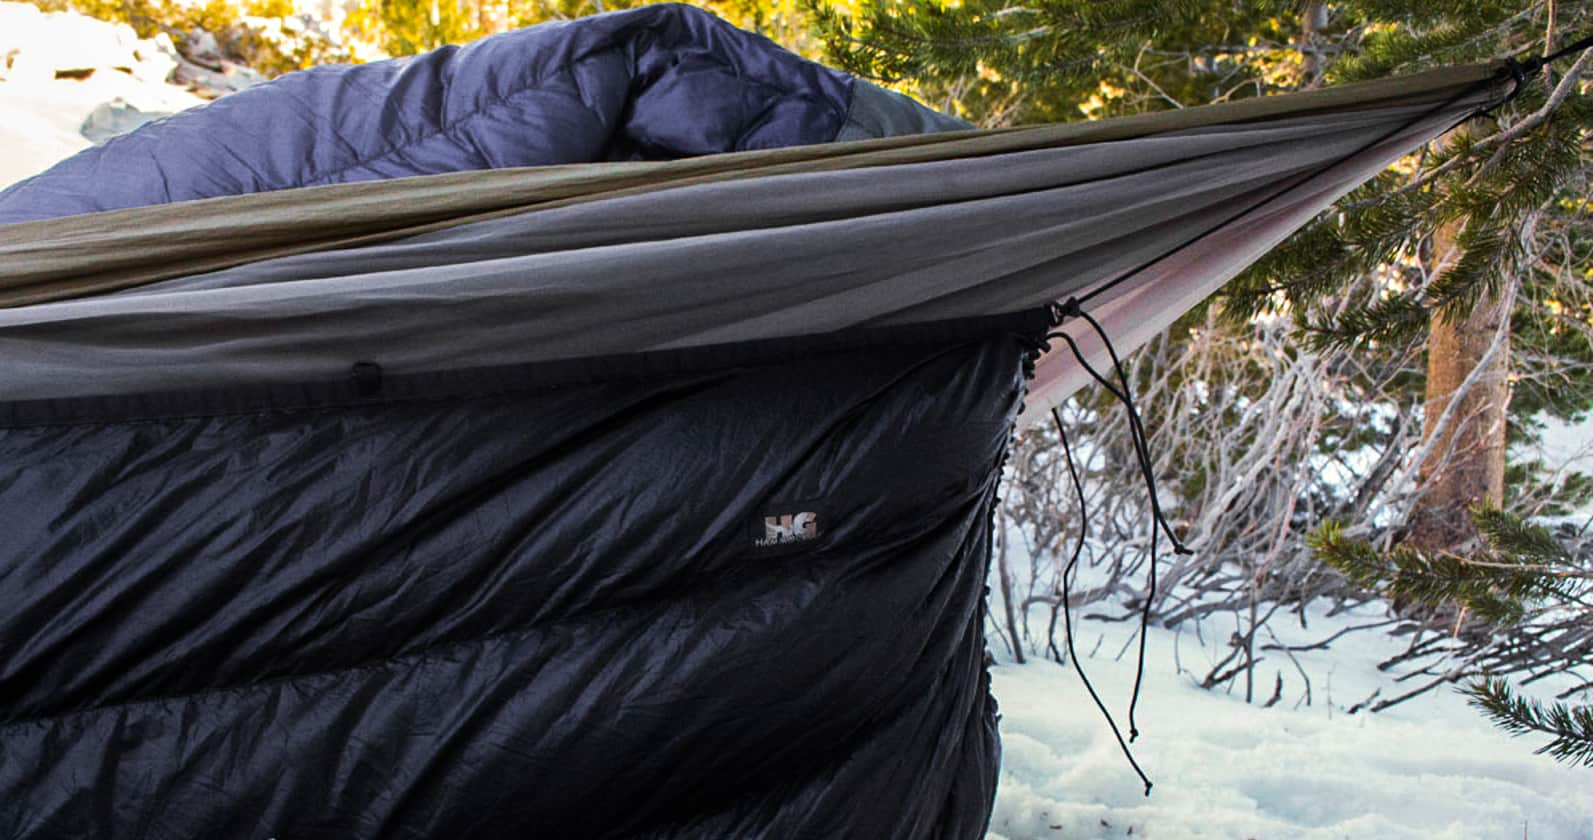 4 Clever Tricks To Stay Cozy While Hammock Camping Without An